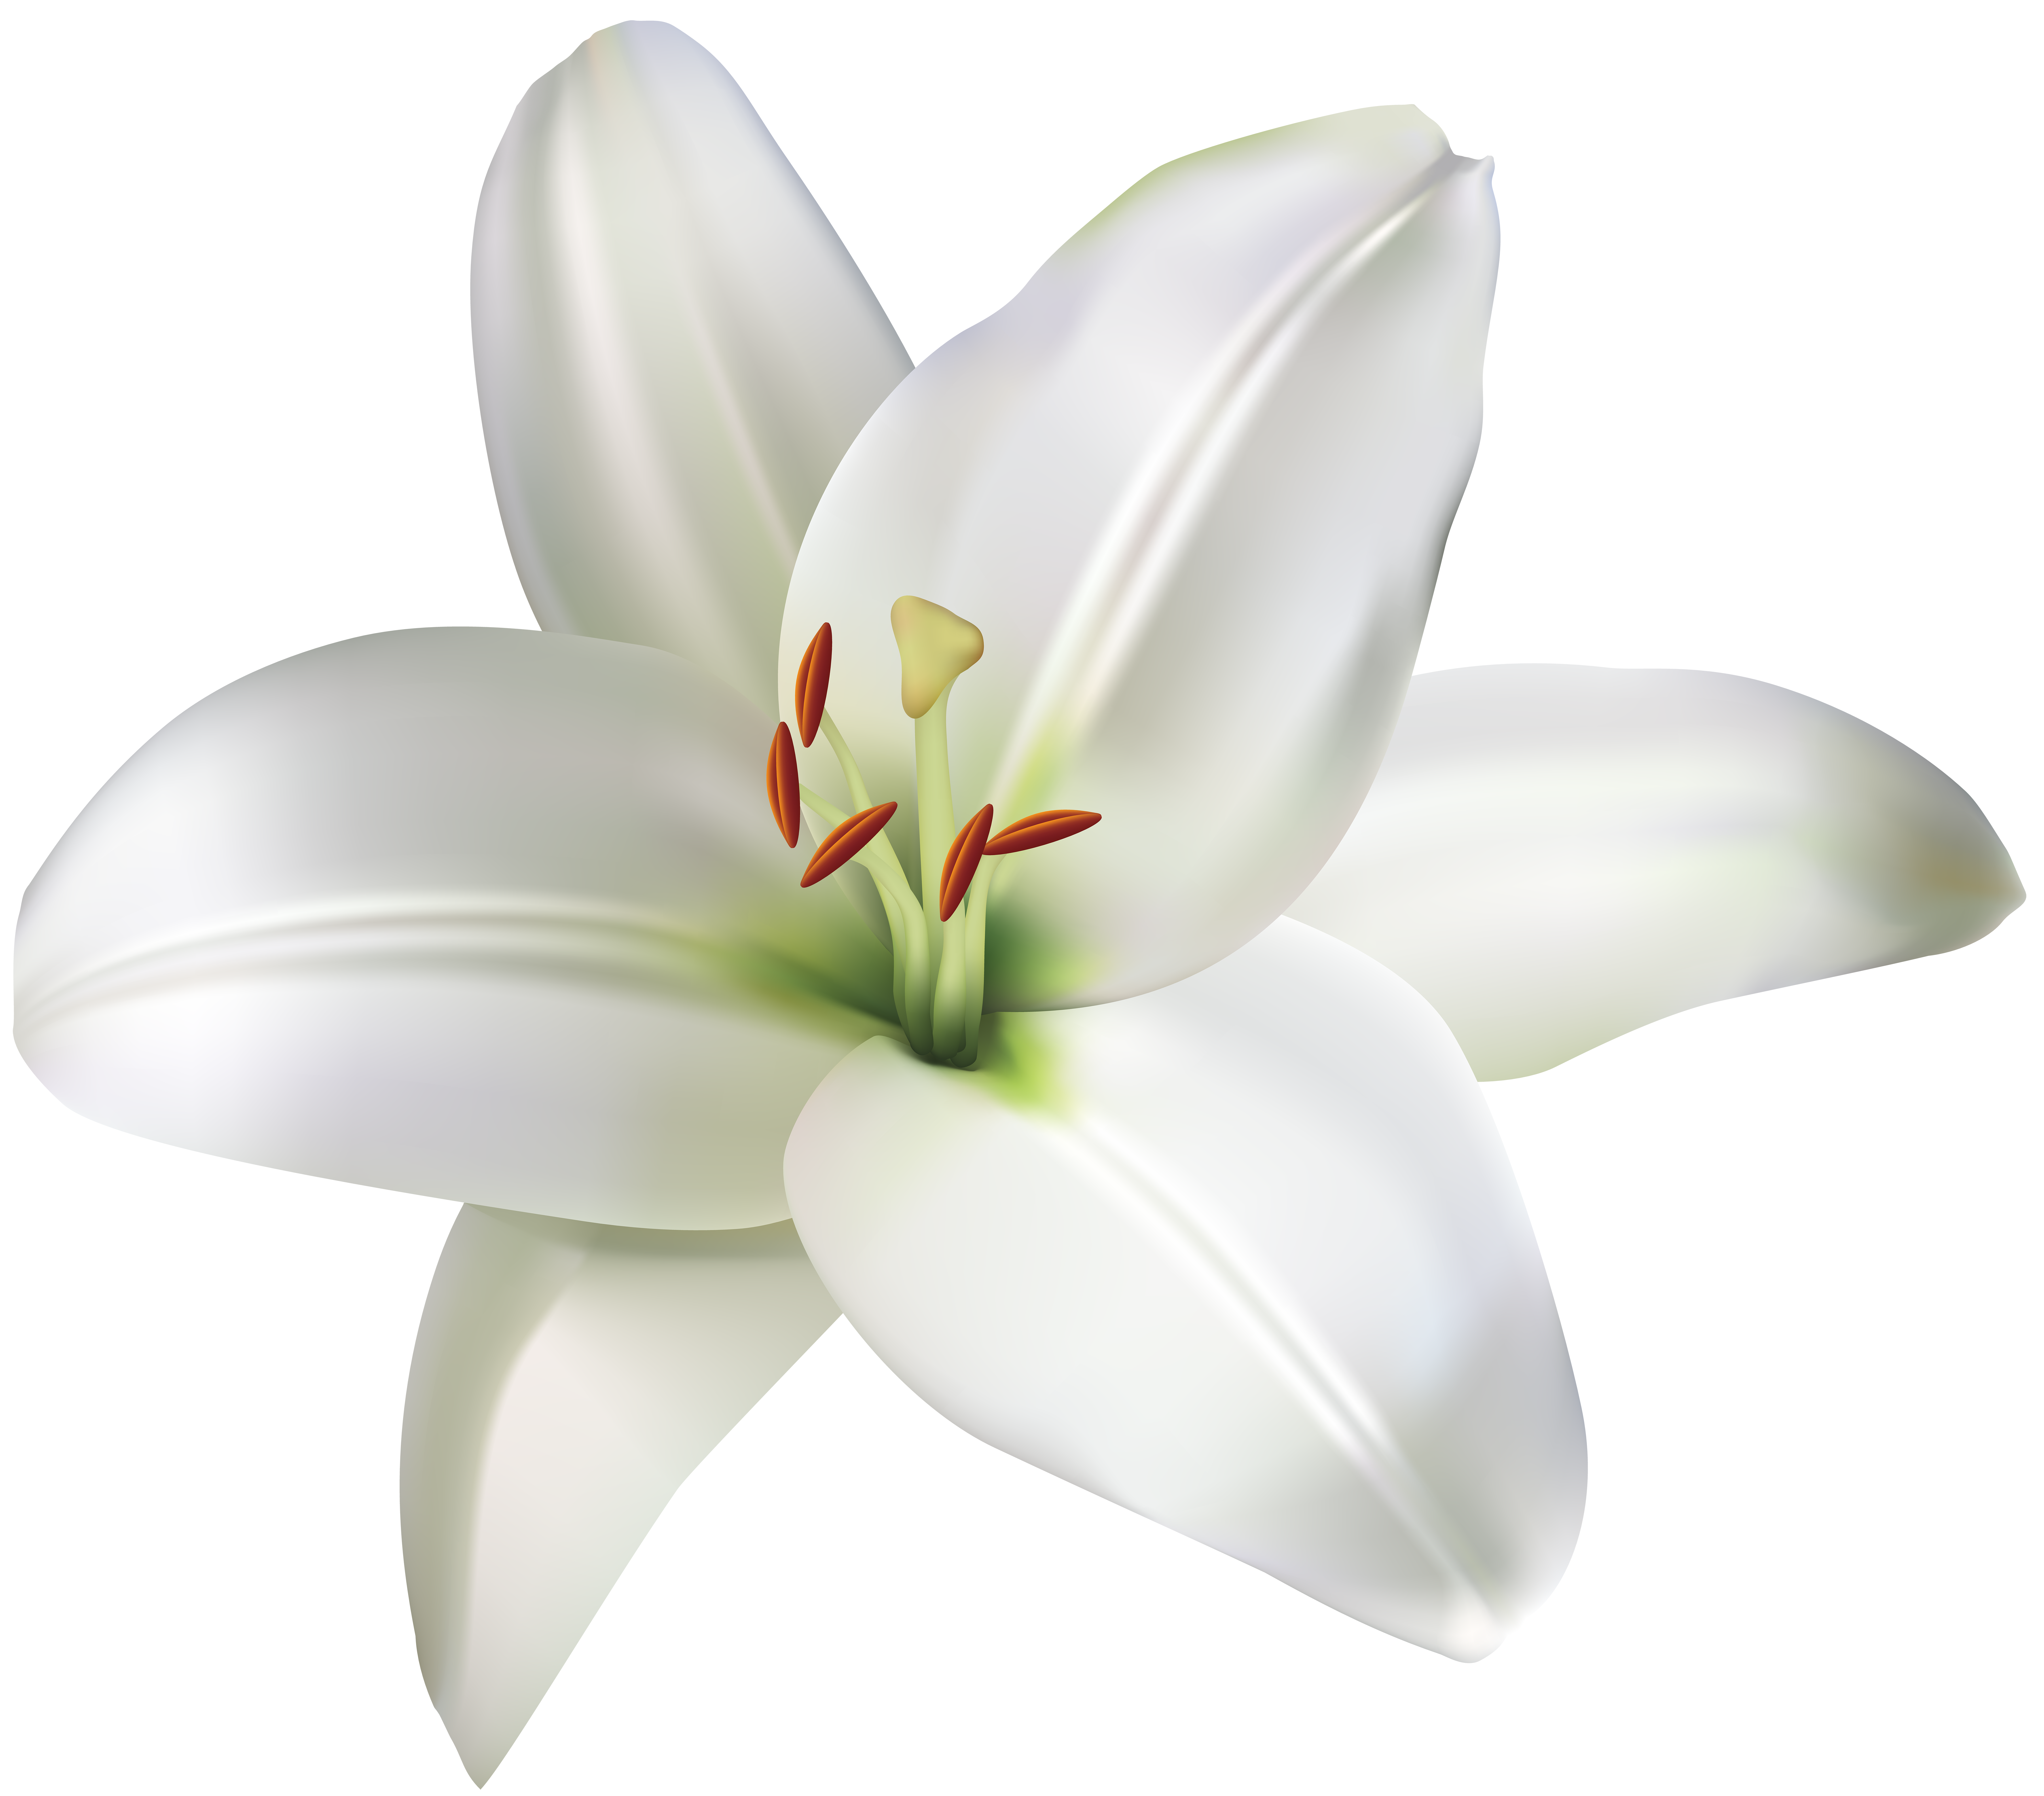 Lily Flower Png Clip Art Image Gallery Yopriceville High Quality Images And Transparent Png Free Clipart In 2021 Lily Flower Flower Clipart Art Images